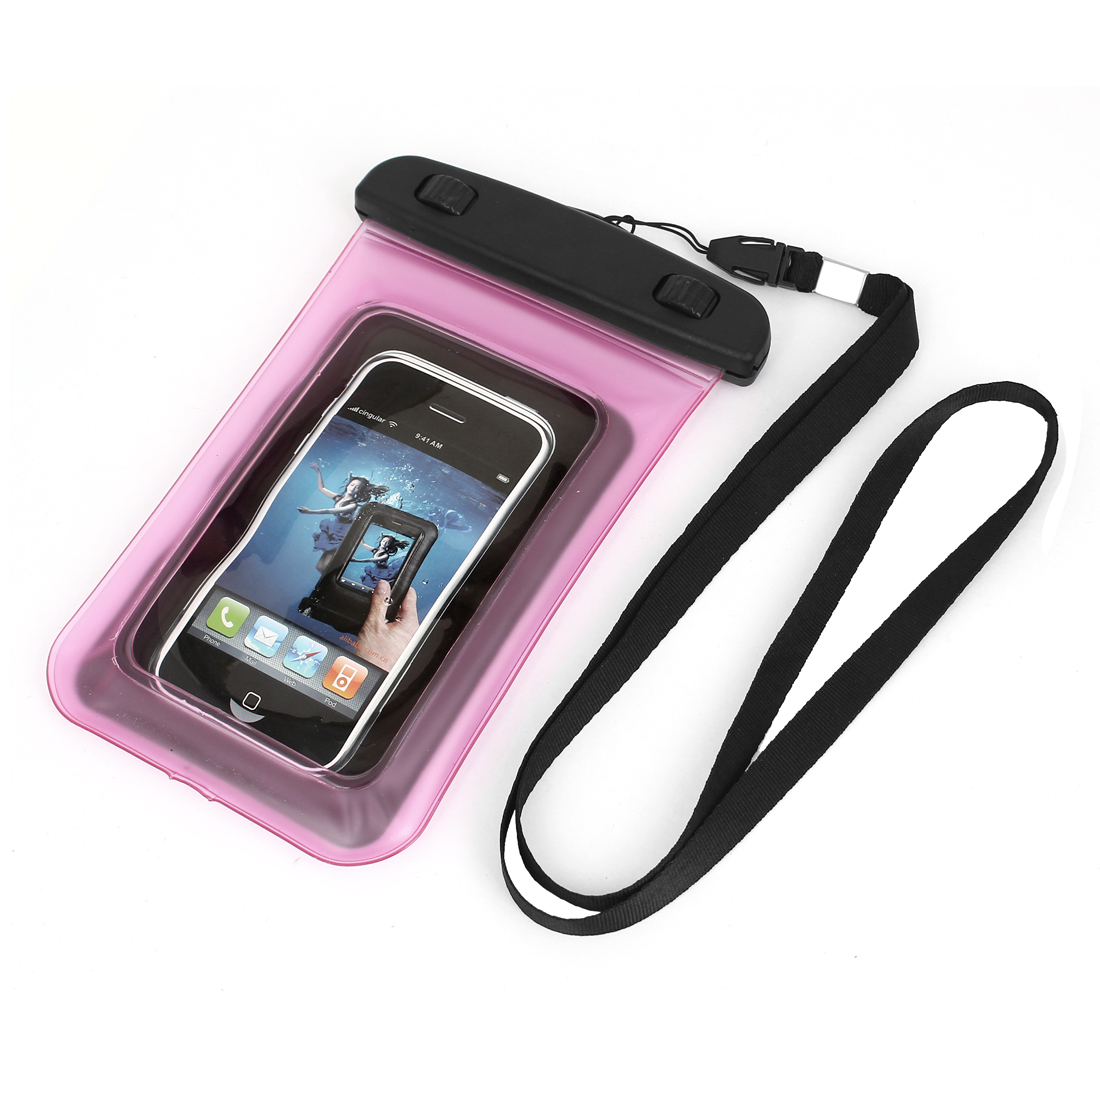 "Transparent Underwater Waterproof for 4""  Mobile Phone Bag Pouch Case Pink"